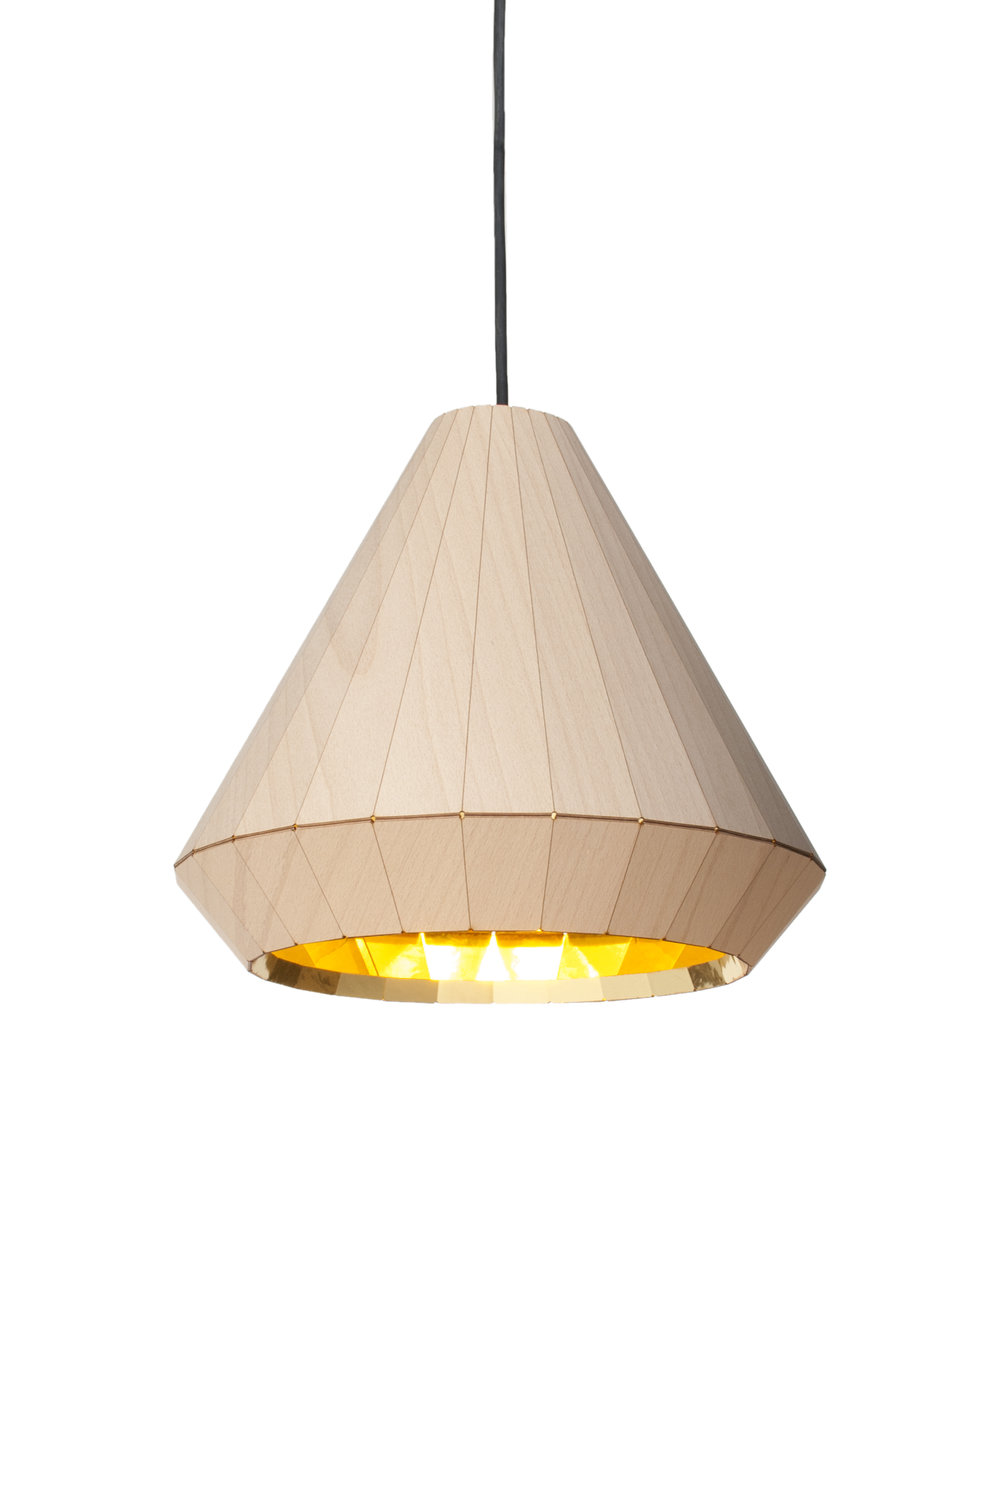 Wooden_Light-Low-DavidDerksenDesign-WHITE-HIGH RES.jpg